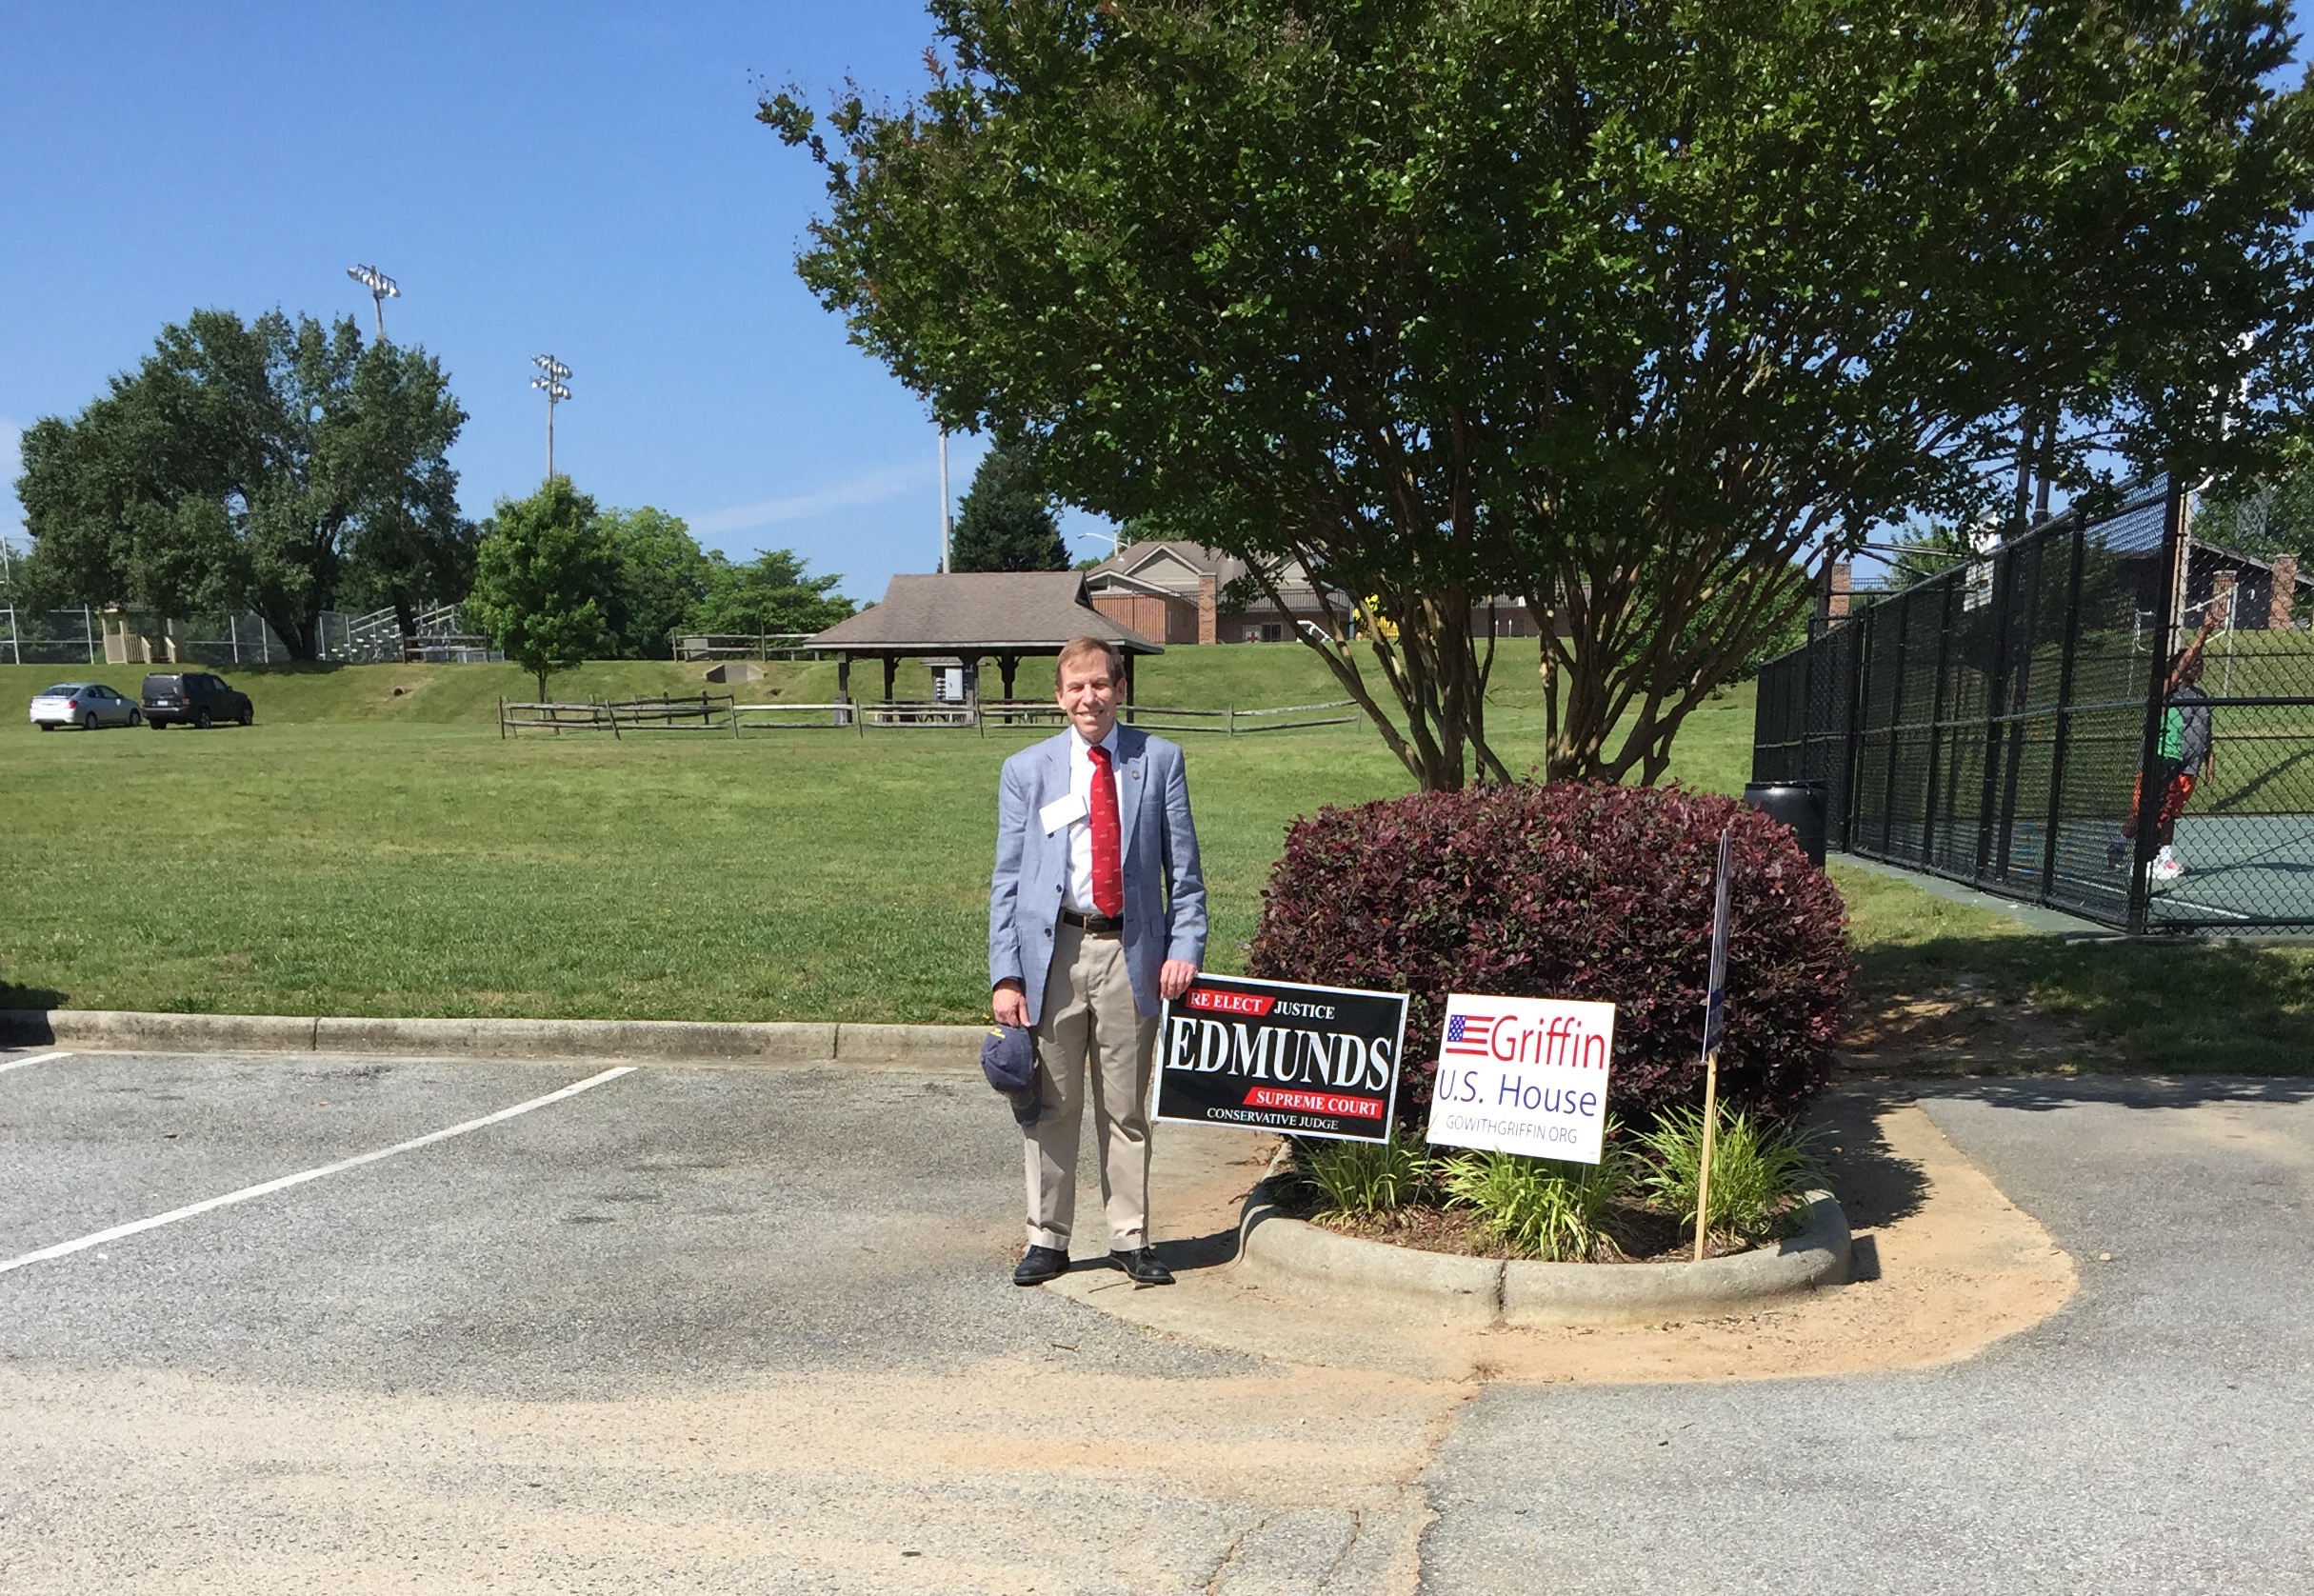 At early voting site in High Point, May 28, 2016.